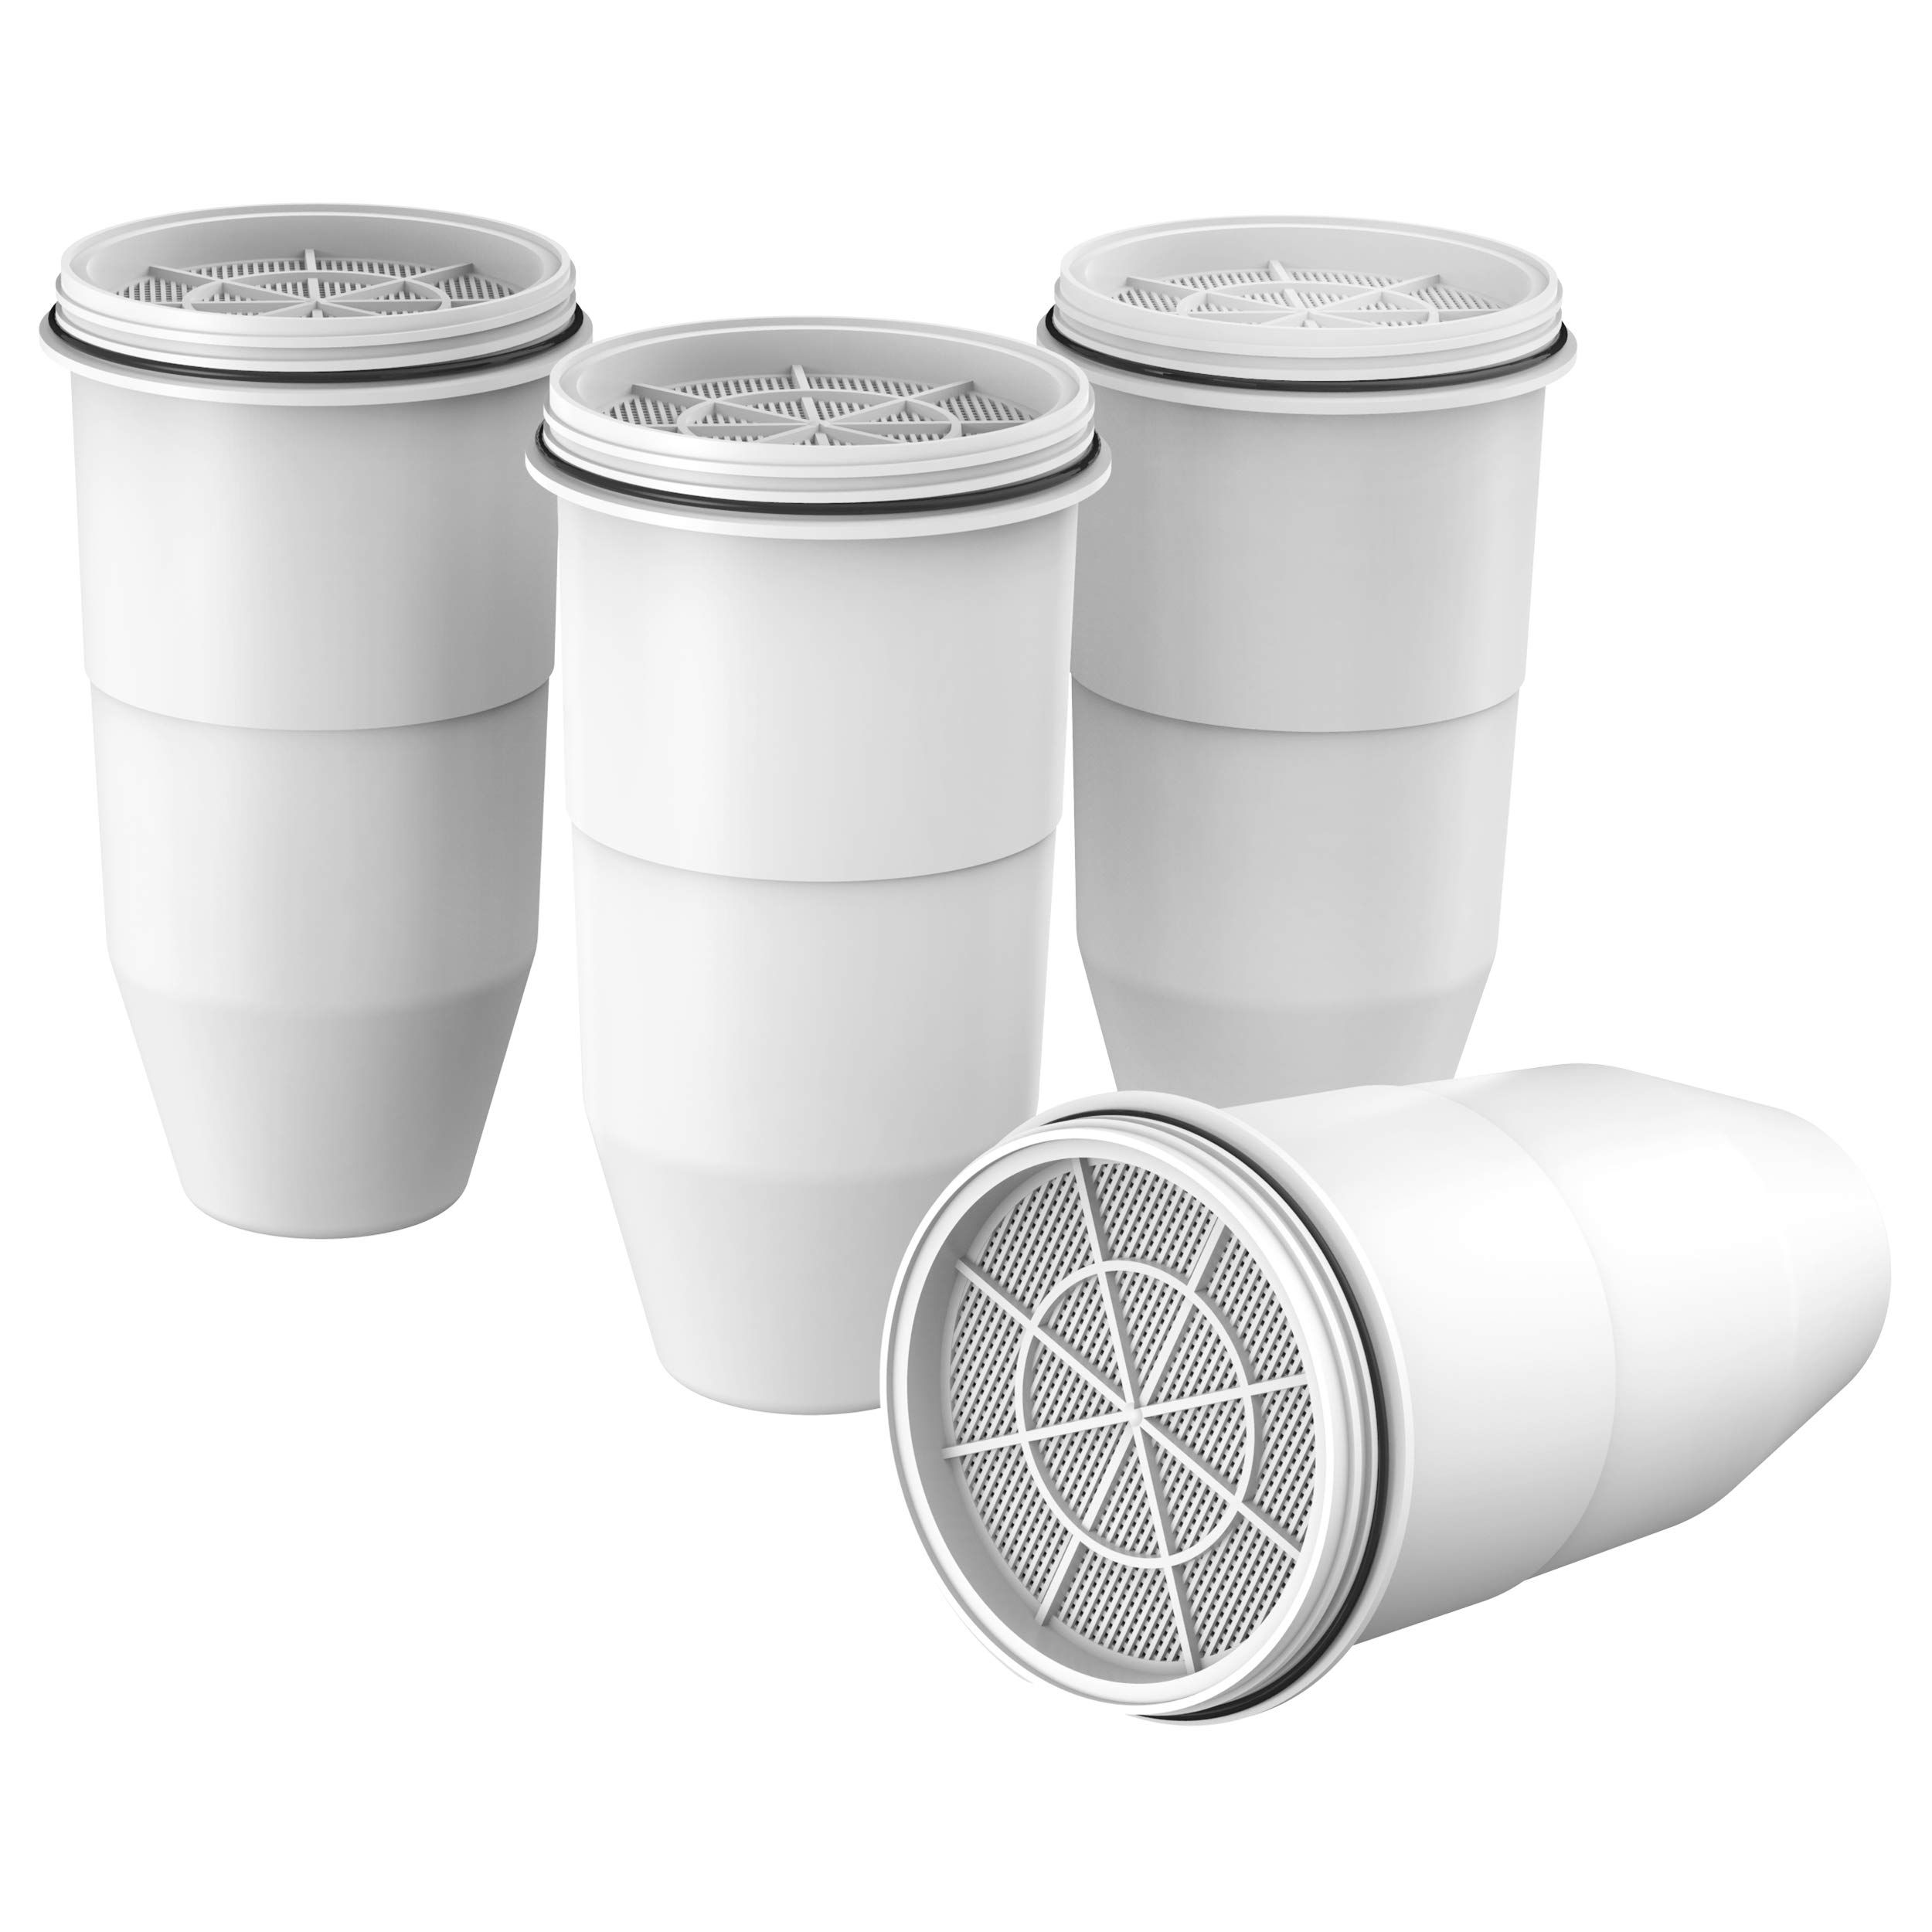 Pack of 2 Compatible with ZeroWater Pitchers and Dispensers Filterlogic ZR-017 6-stage Pitcher Water Filter